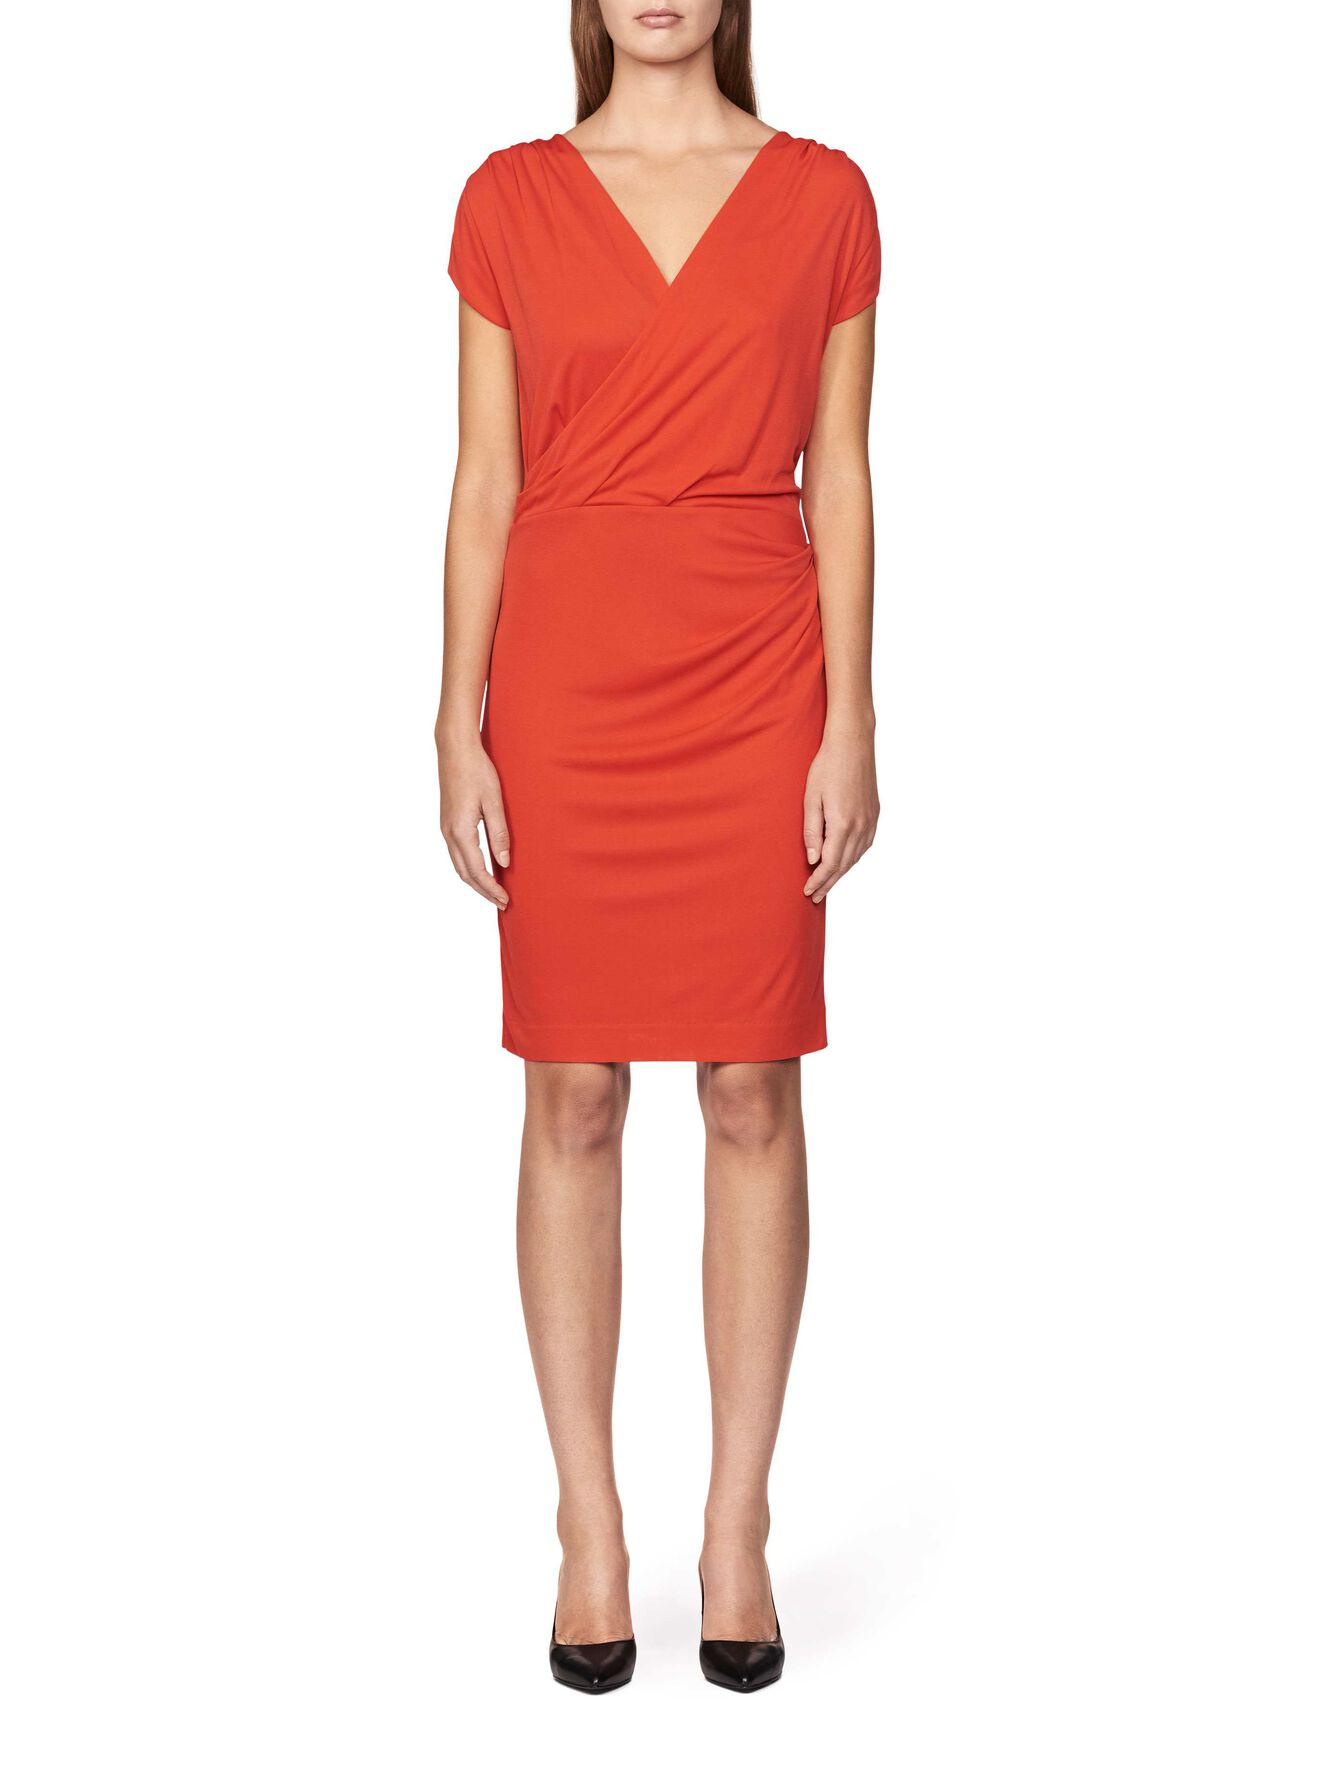 Kashi Dress in Flame Red from Tiger of Sweden